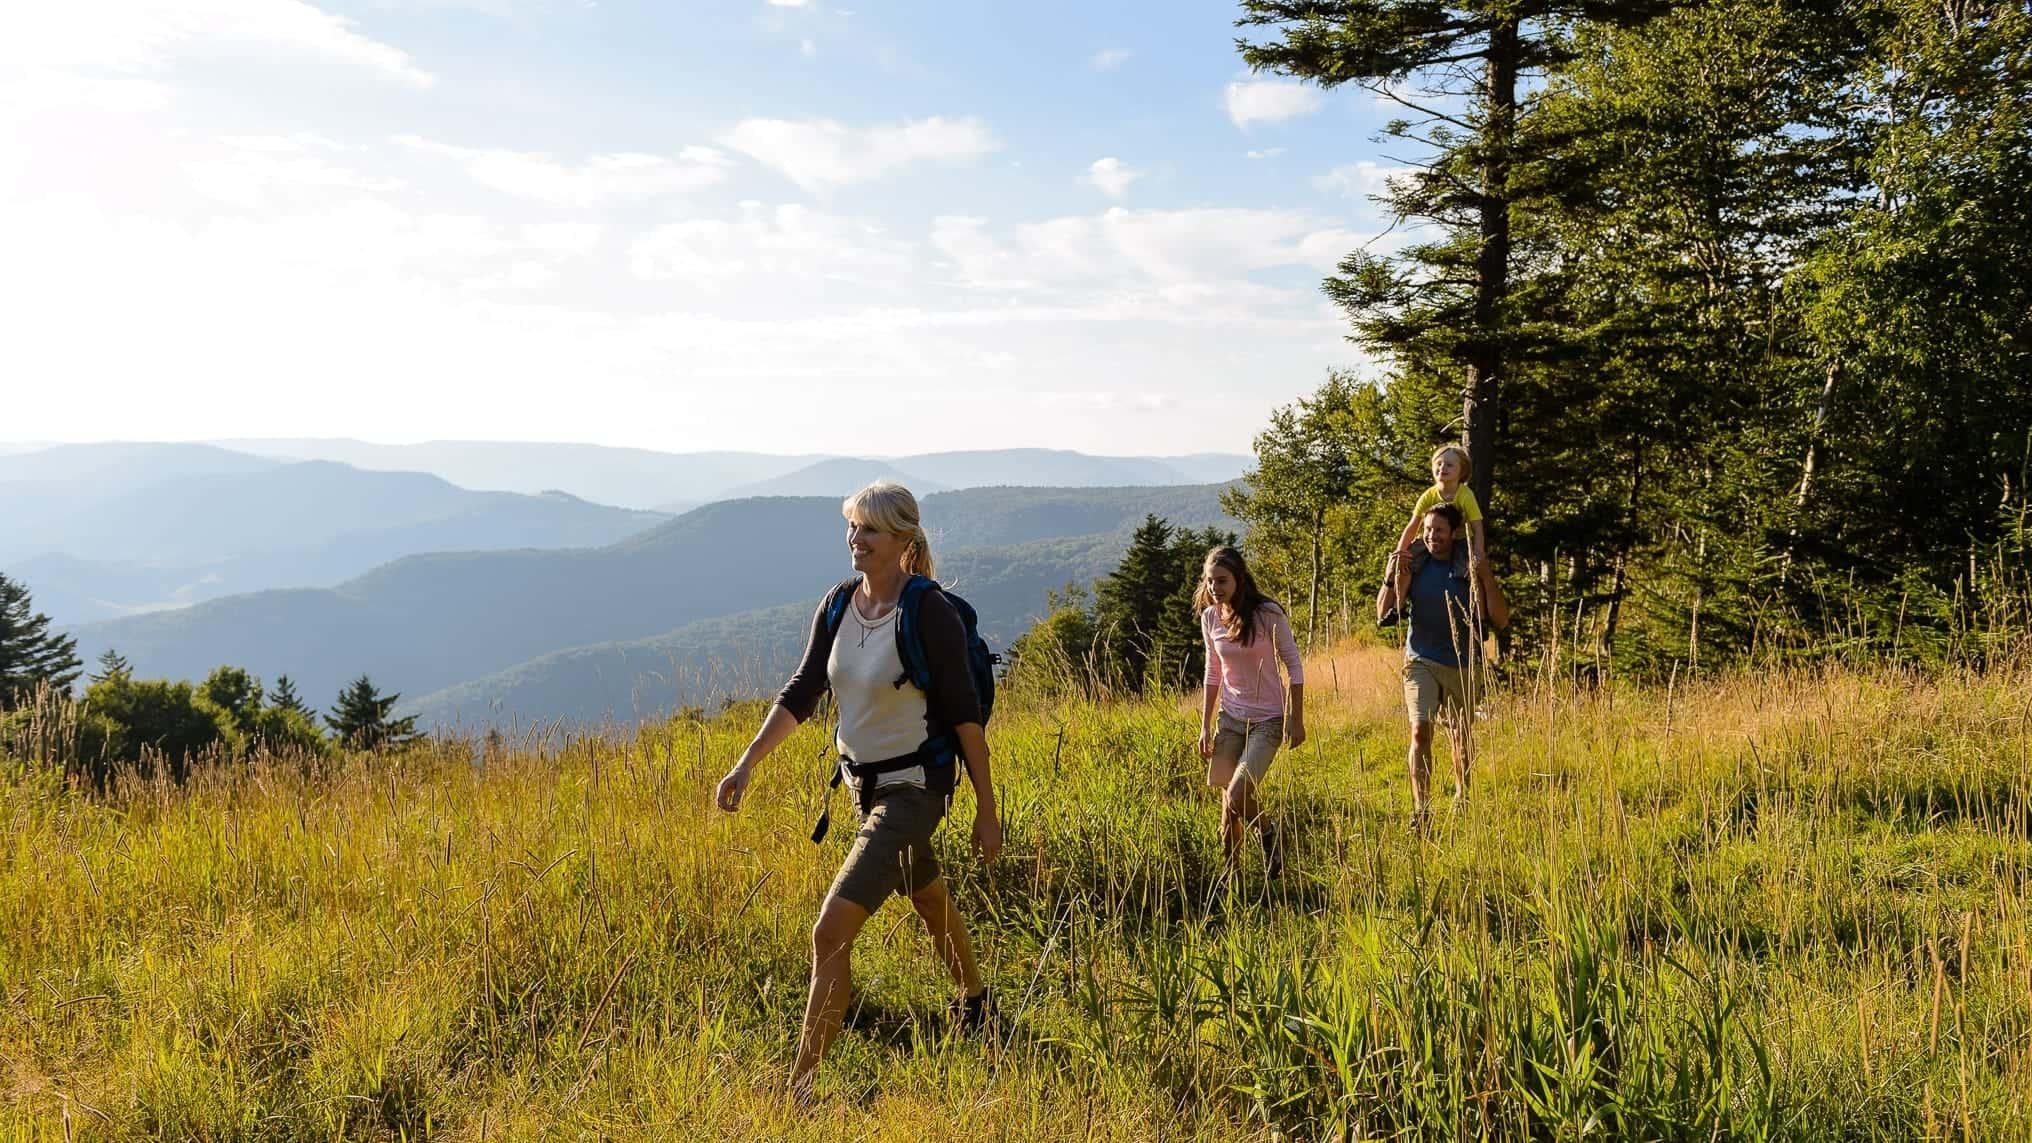 Enjoy a leisurely hike around the Basin area and Shavers Lake!